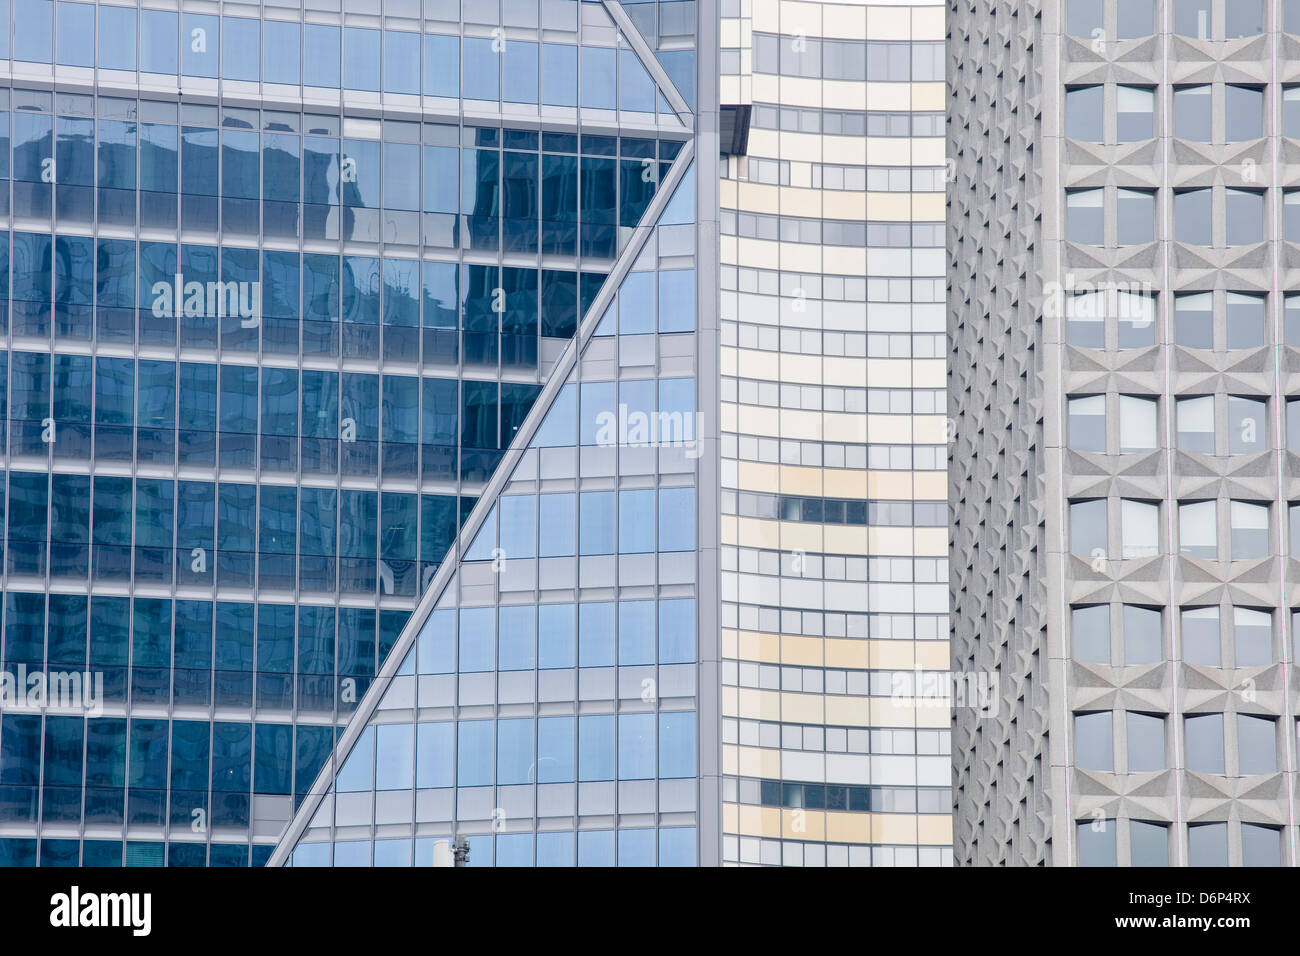 Résumé de bâtiments dans le quartier de la Défense, Paris, France, Europe Photo Stock